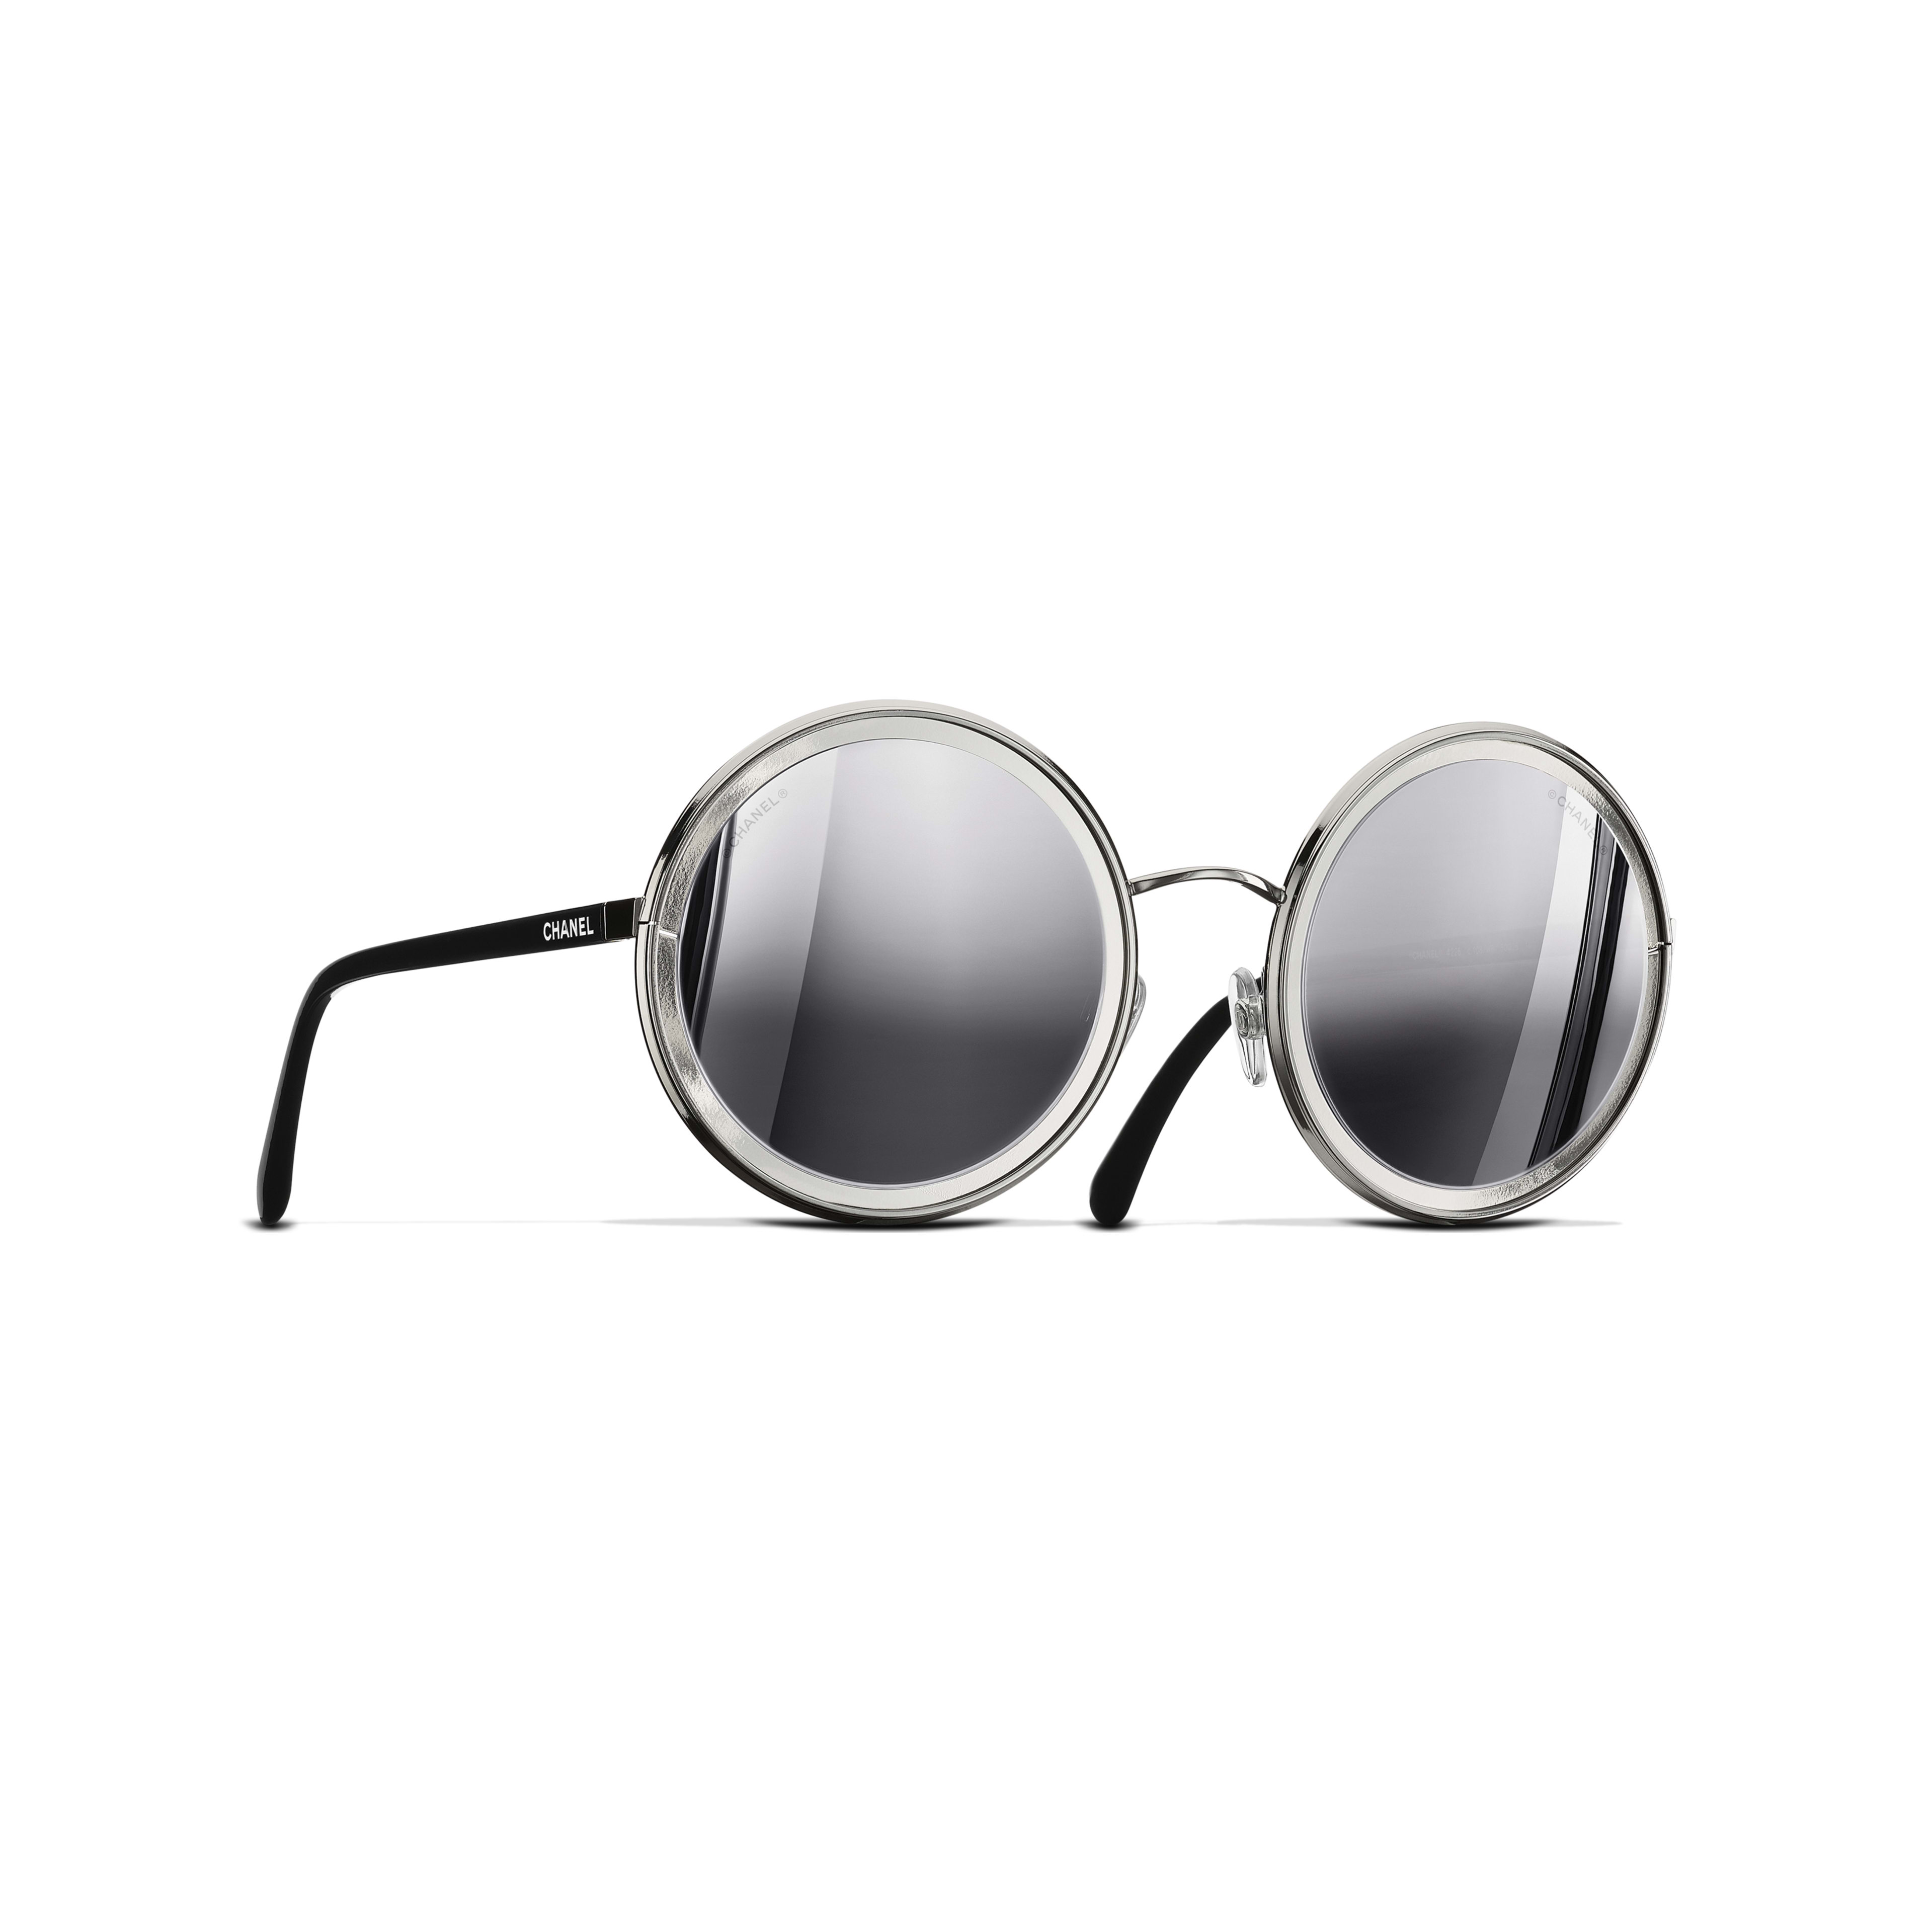 Round Sunglasses - Silver - Metal - Default view - see full sized version